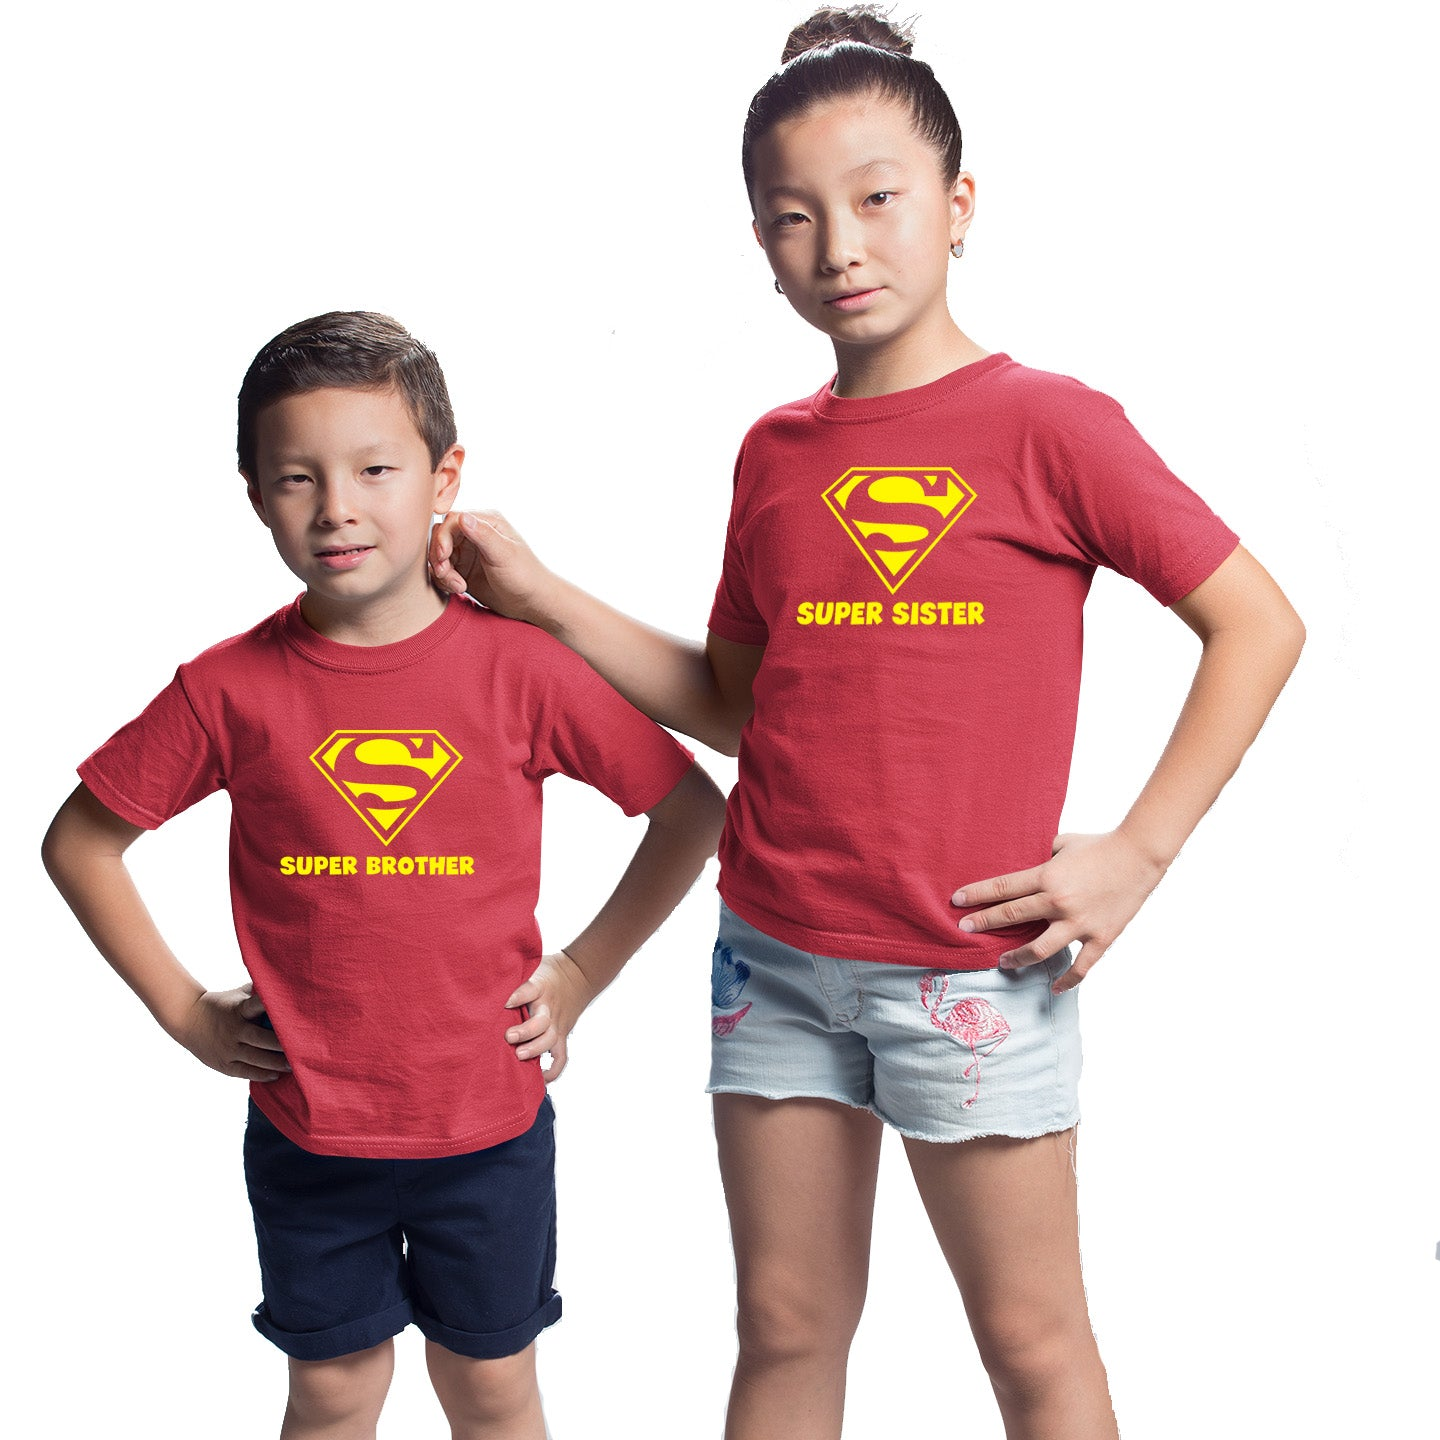 Sprinklecart Super Brother Super Sister Matching T Shirts Red Cotton T Shirt for Siblings